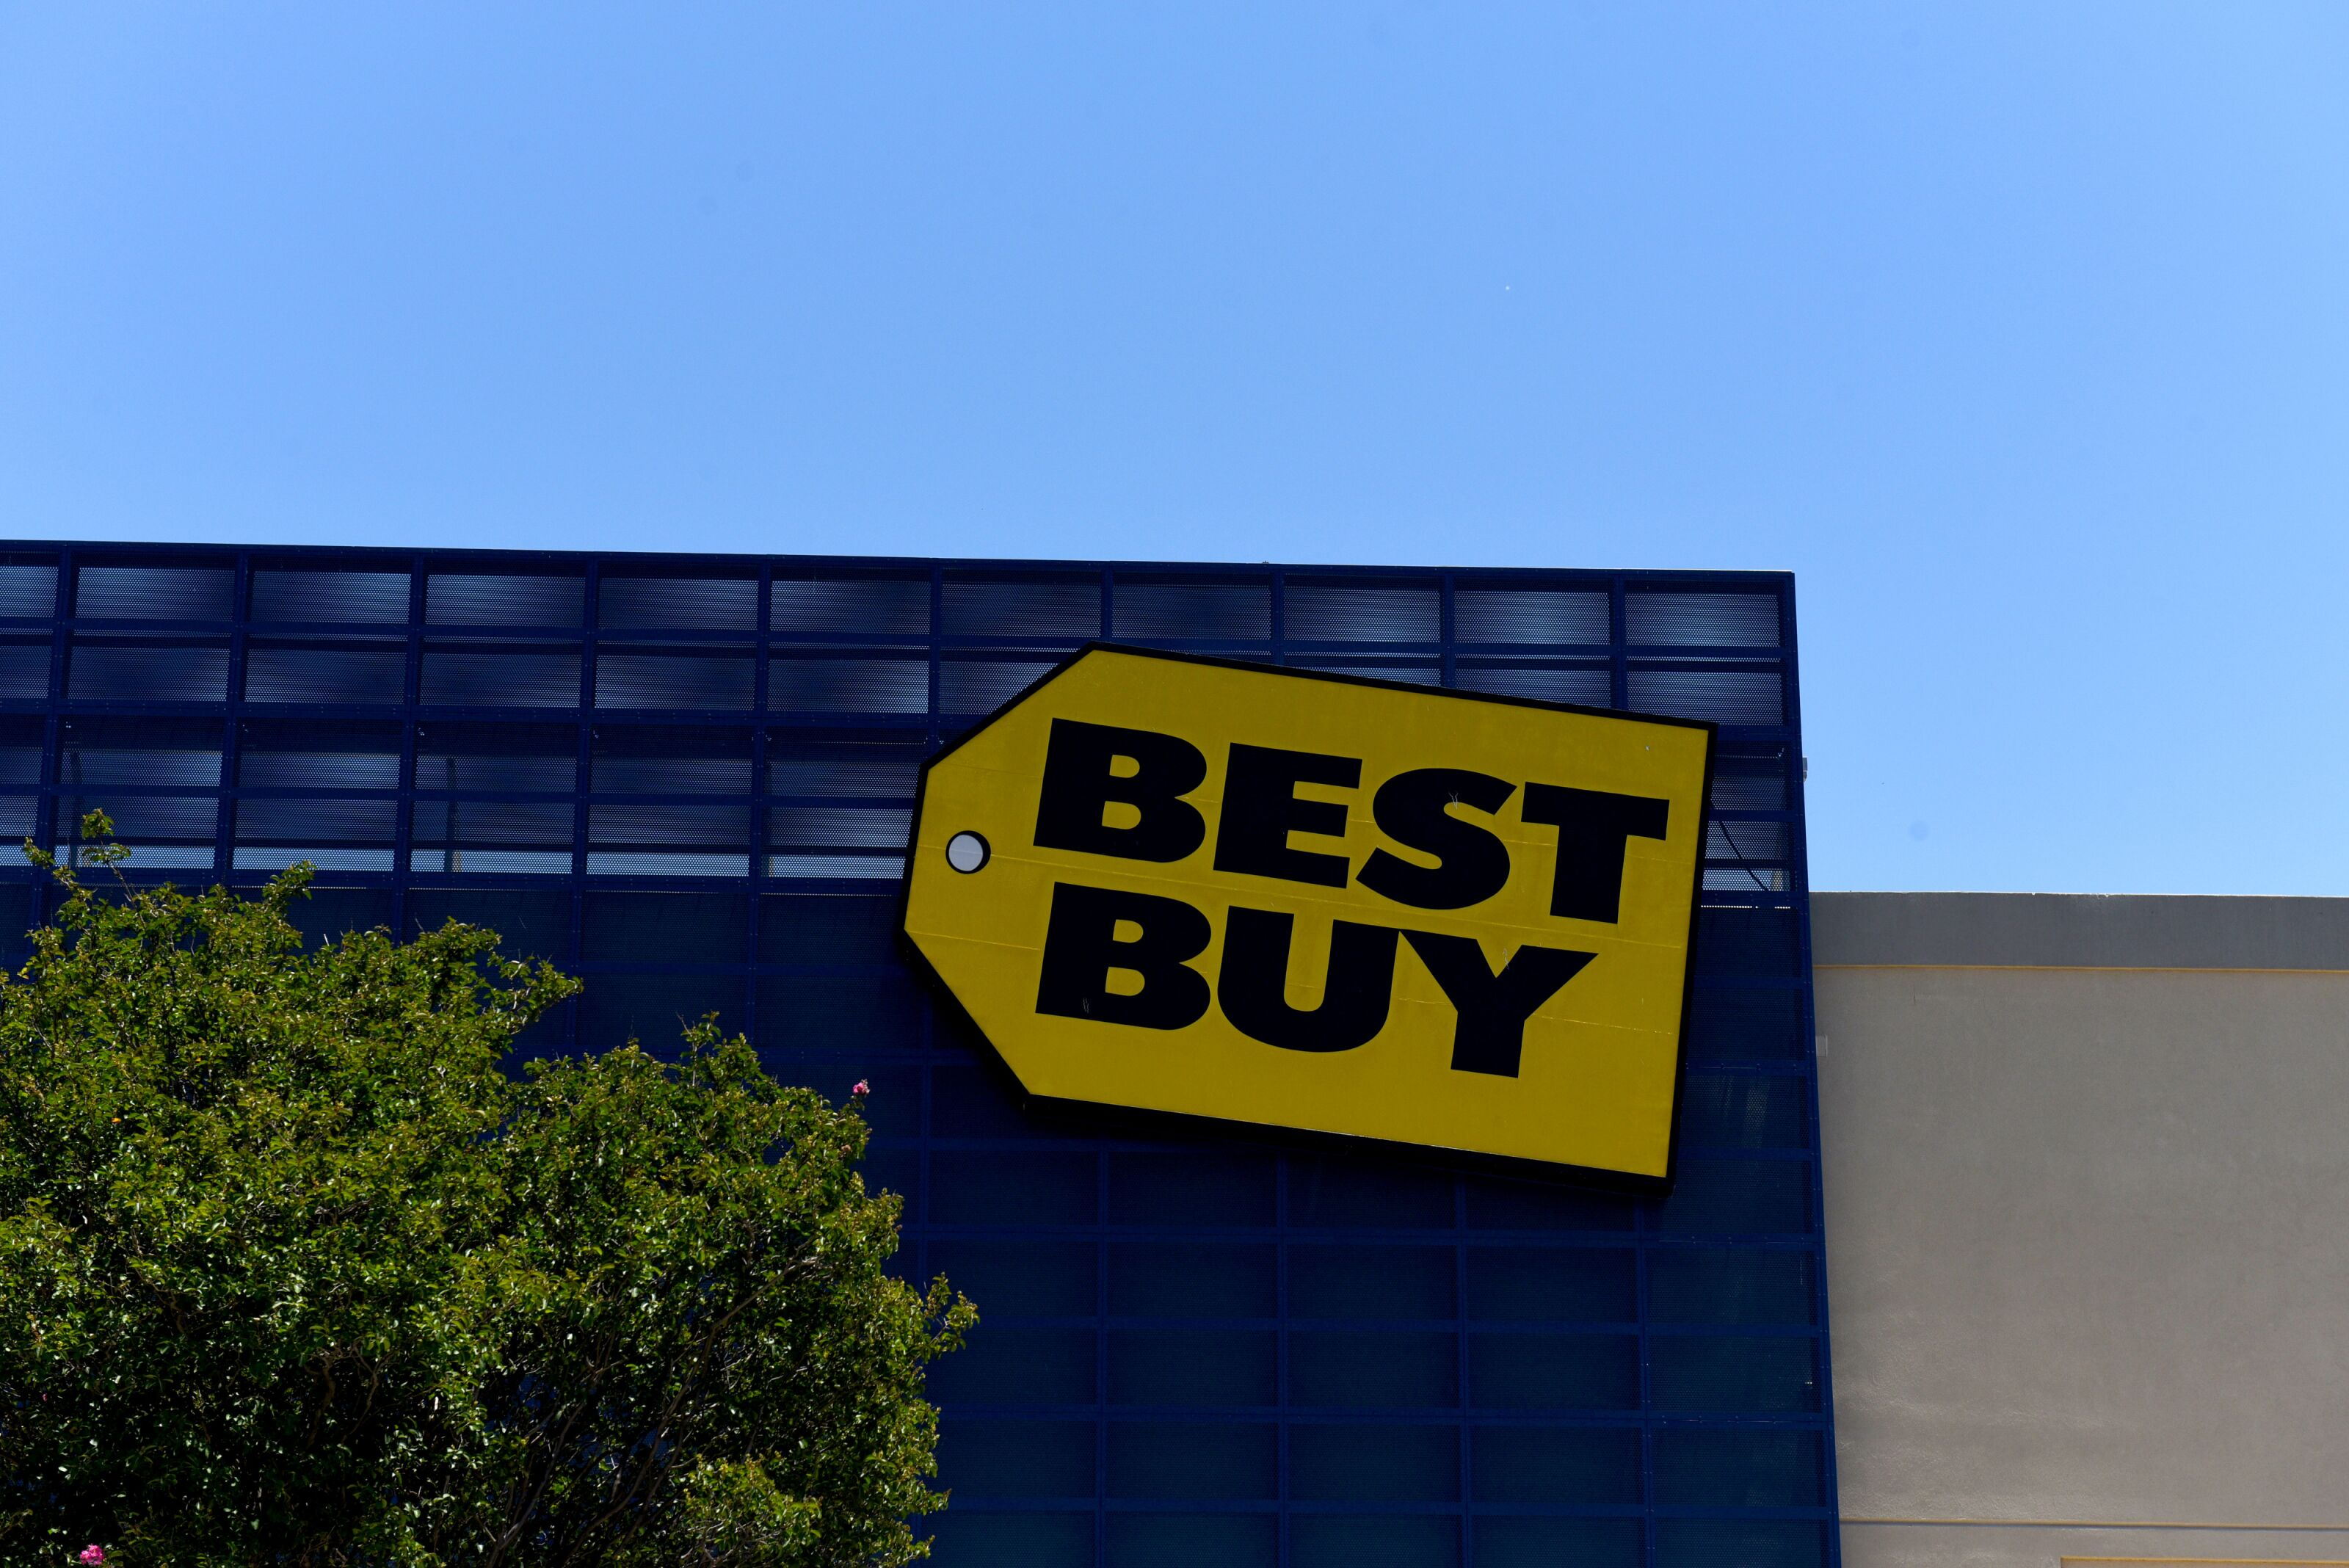 7 items· Find 42 listings related to 24 Hour Best Buy in Chicago on bestkfilessz6.ga See reviews, photos, directions, phone numbers and more for 24 Hour Best Buy locations in Chicago, IL. Start your search by typing in the business name below.